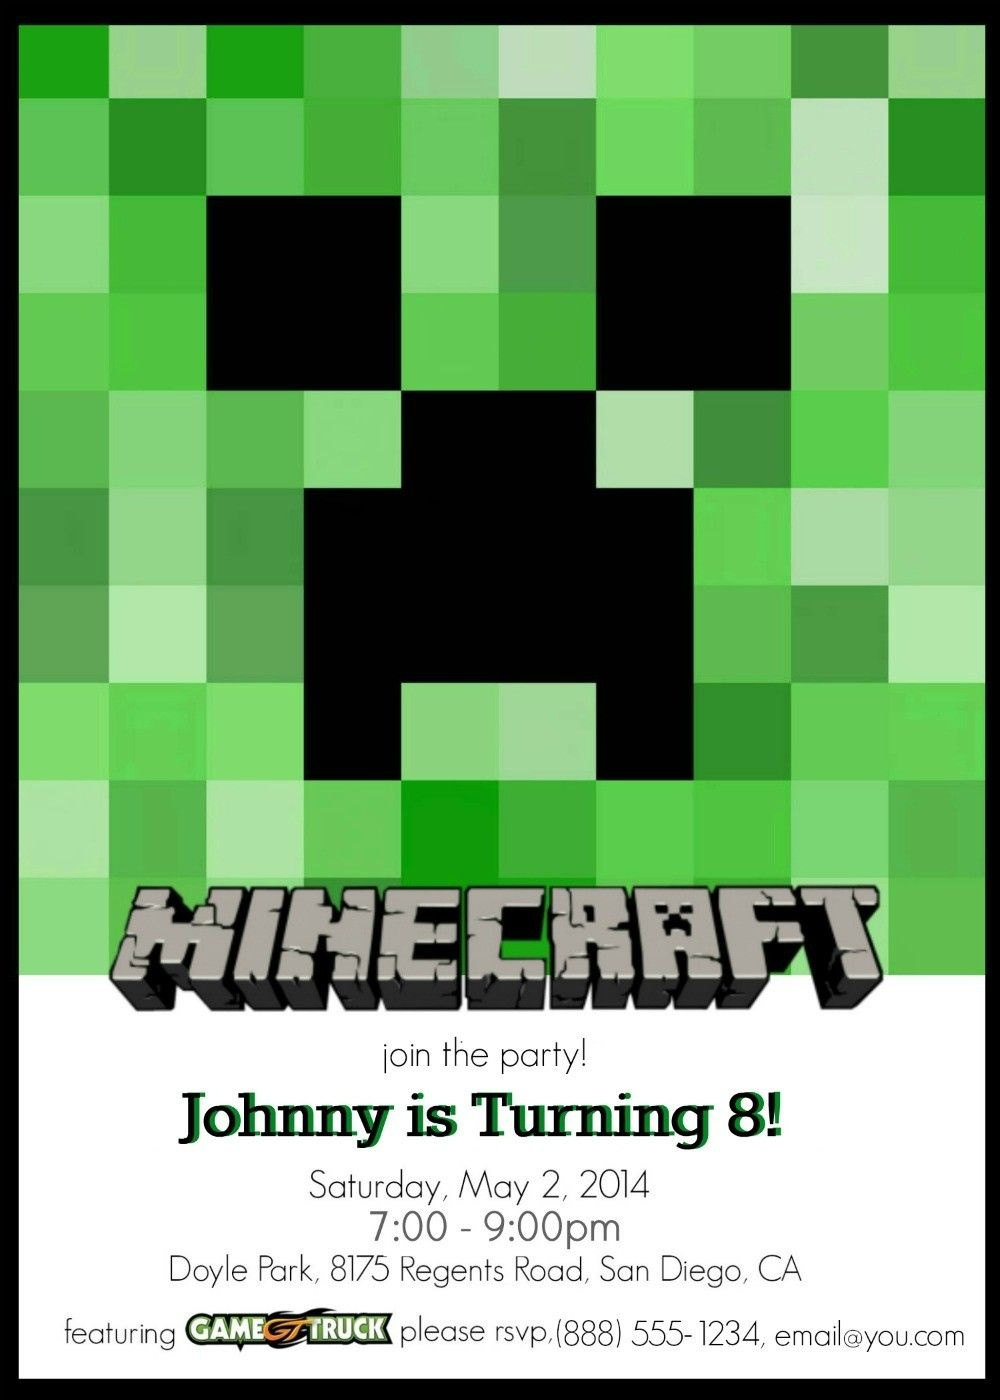 Make Your Own Custom Printable Minecraft Party Invitations - Make Your Own Birthday Party Invitations Free Printable